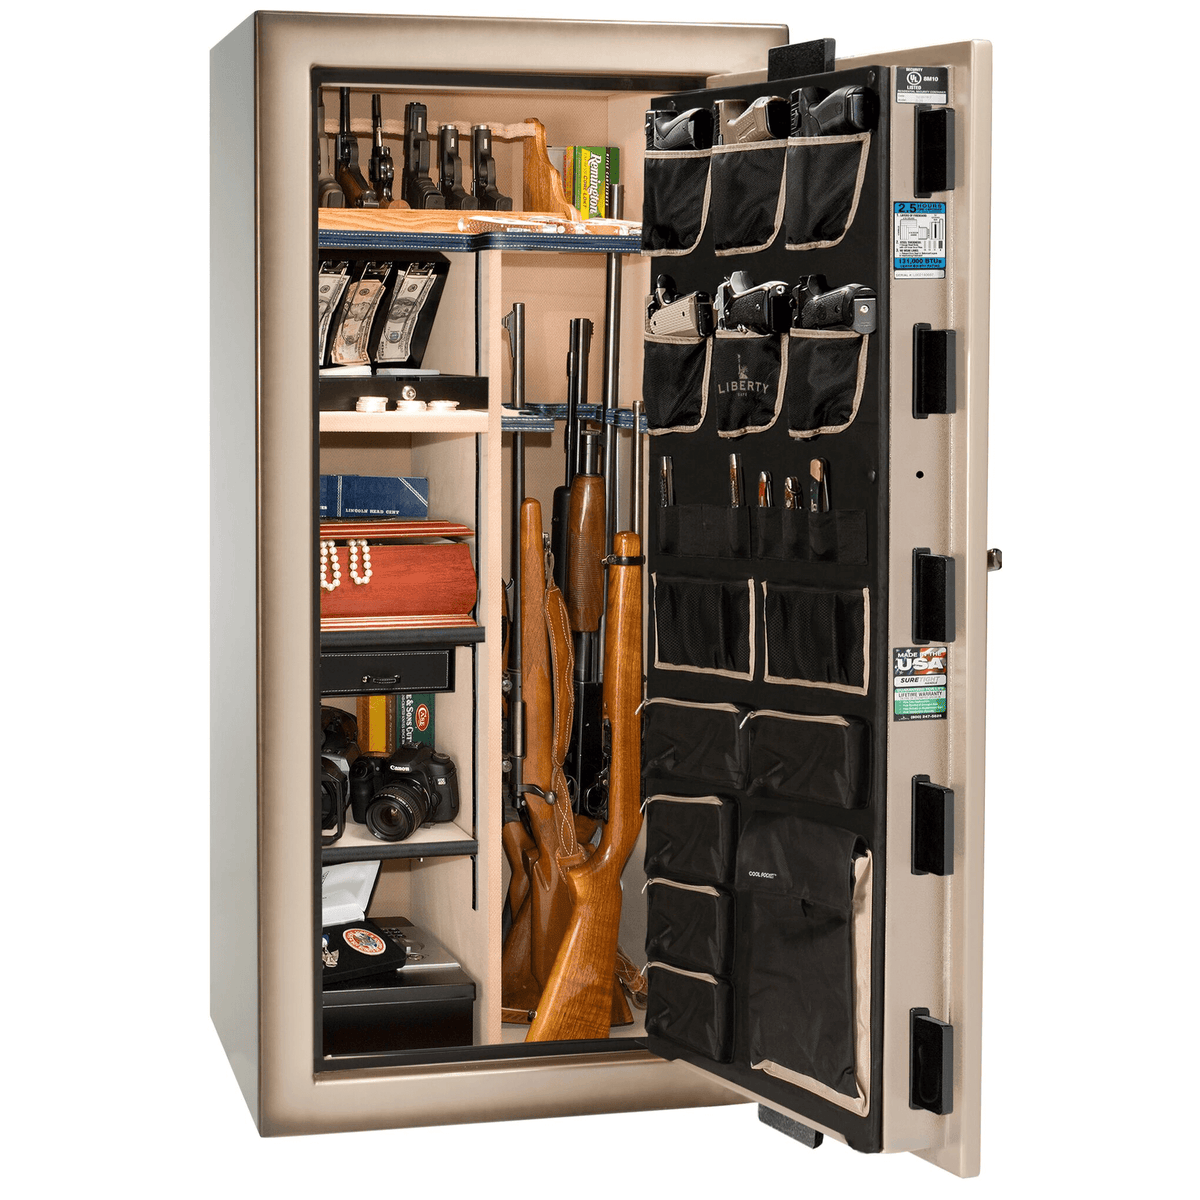 "Magnum Series | Level 8 Security | 2.5 Hours Fire Protection | 40 | Dimensions: 66.5""(H) x 36""(W) x 32""(D) 